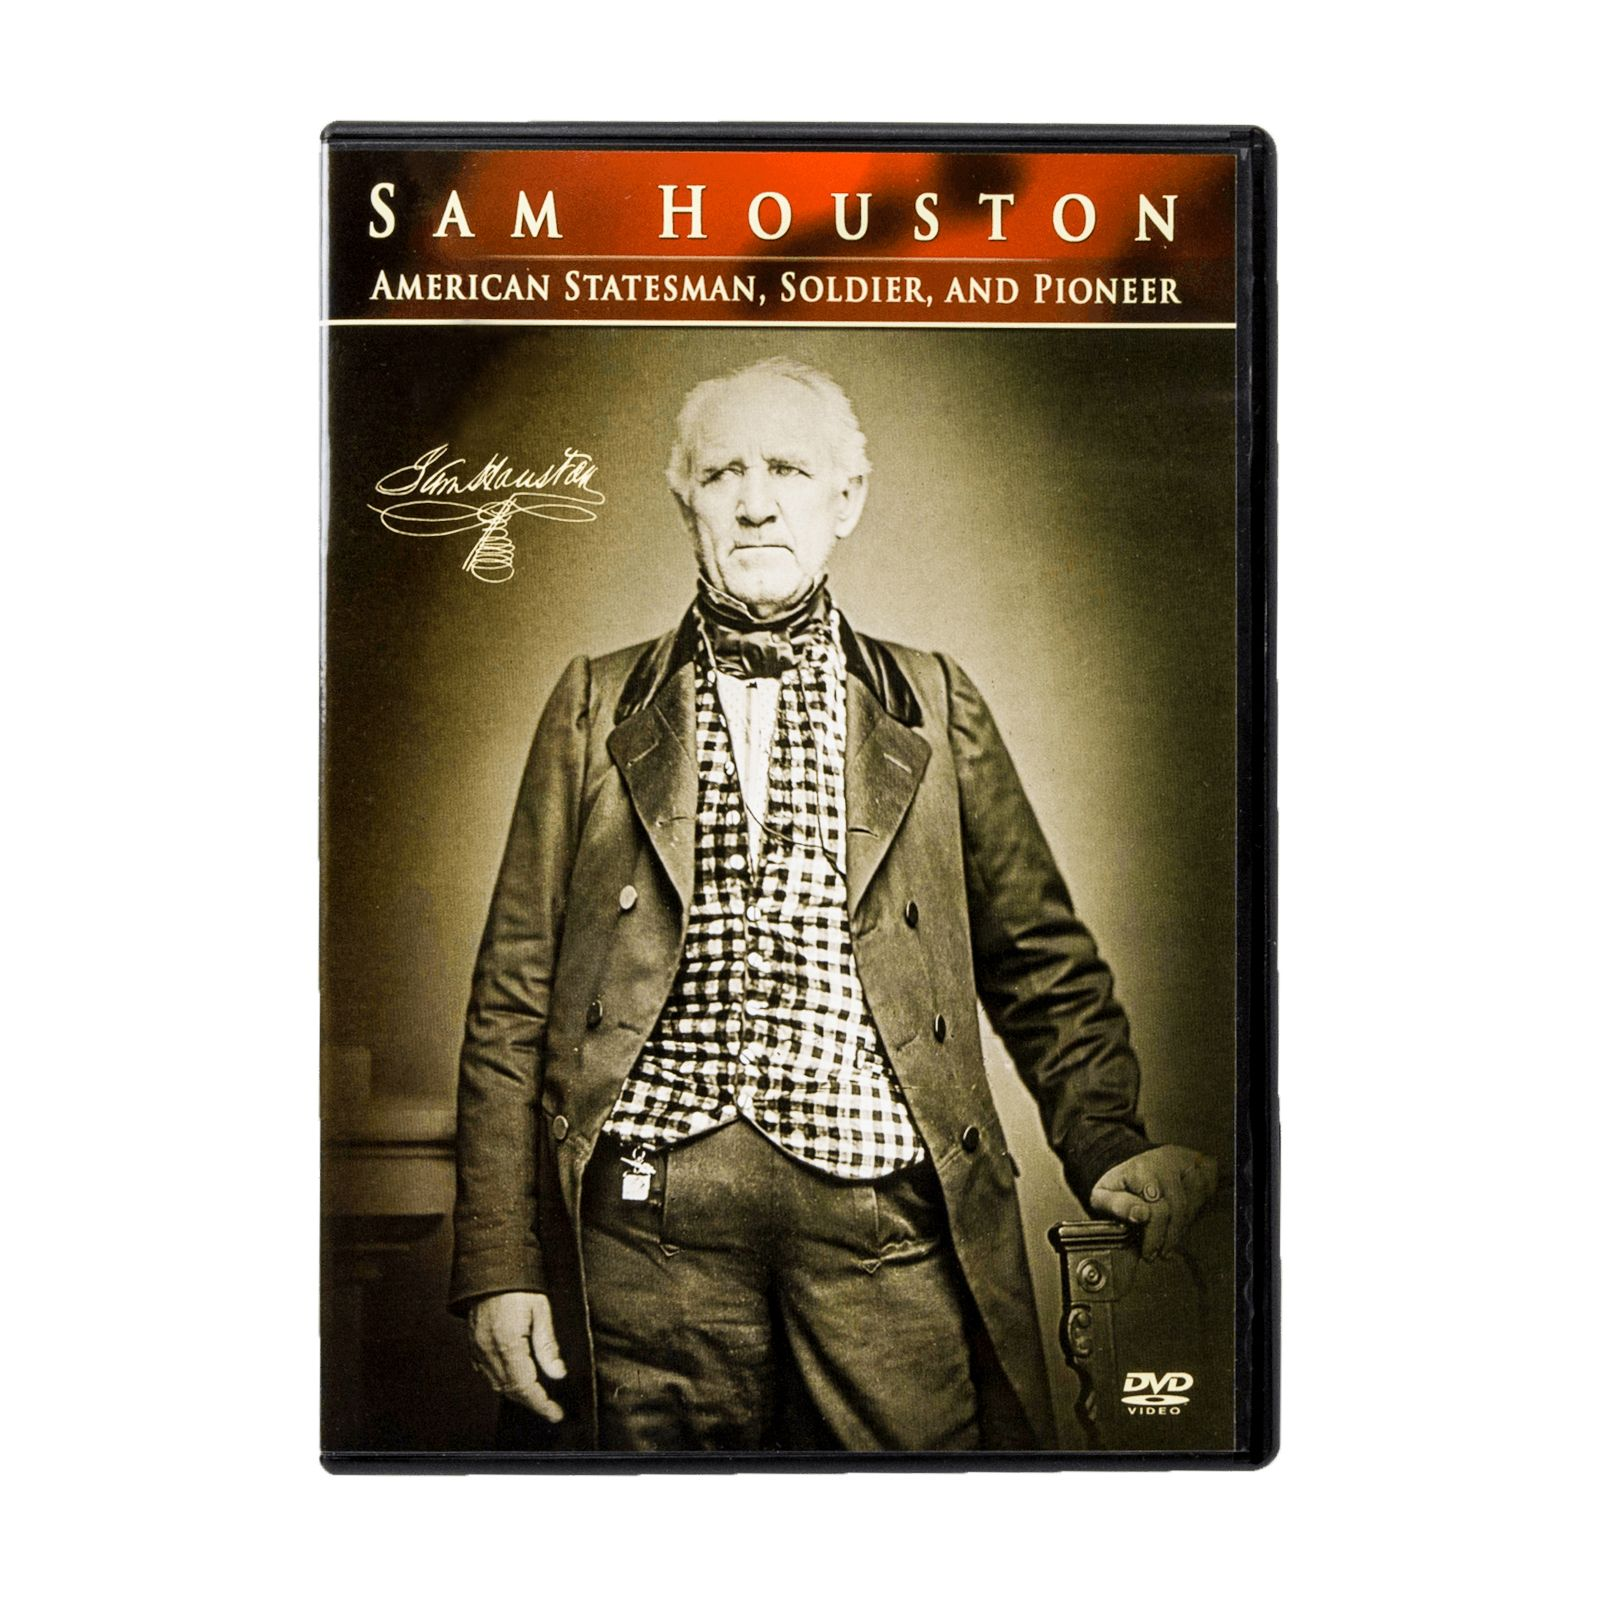 Sam Houston: American Statesman, Soldier, and Pioneer Documentary DVD